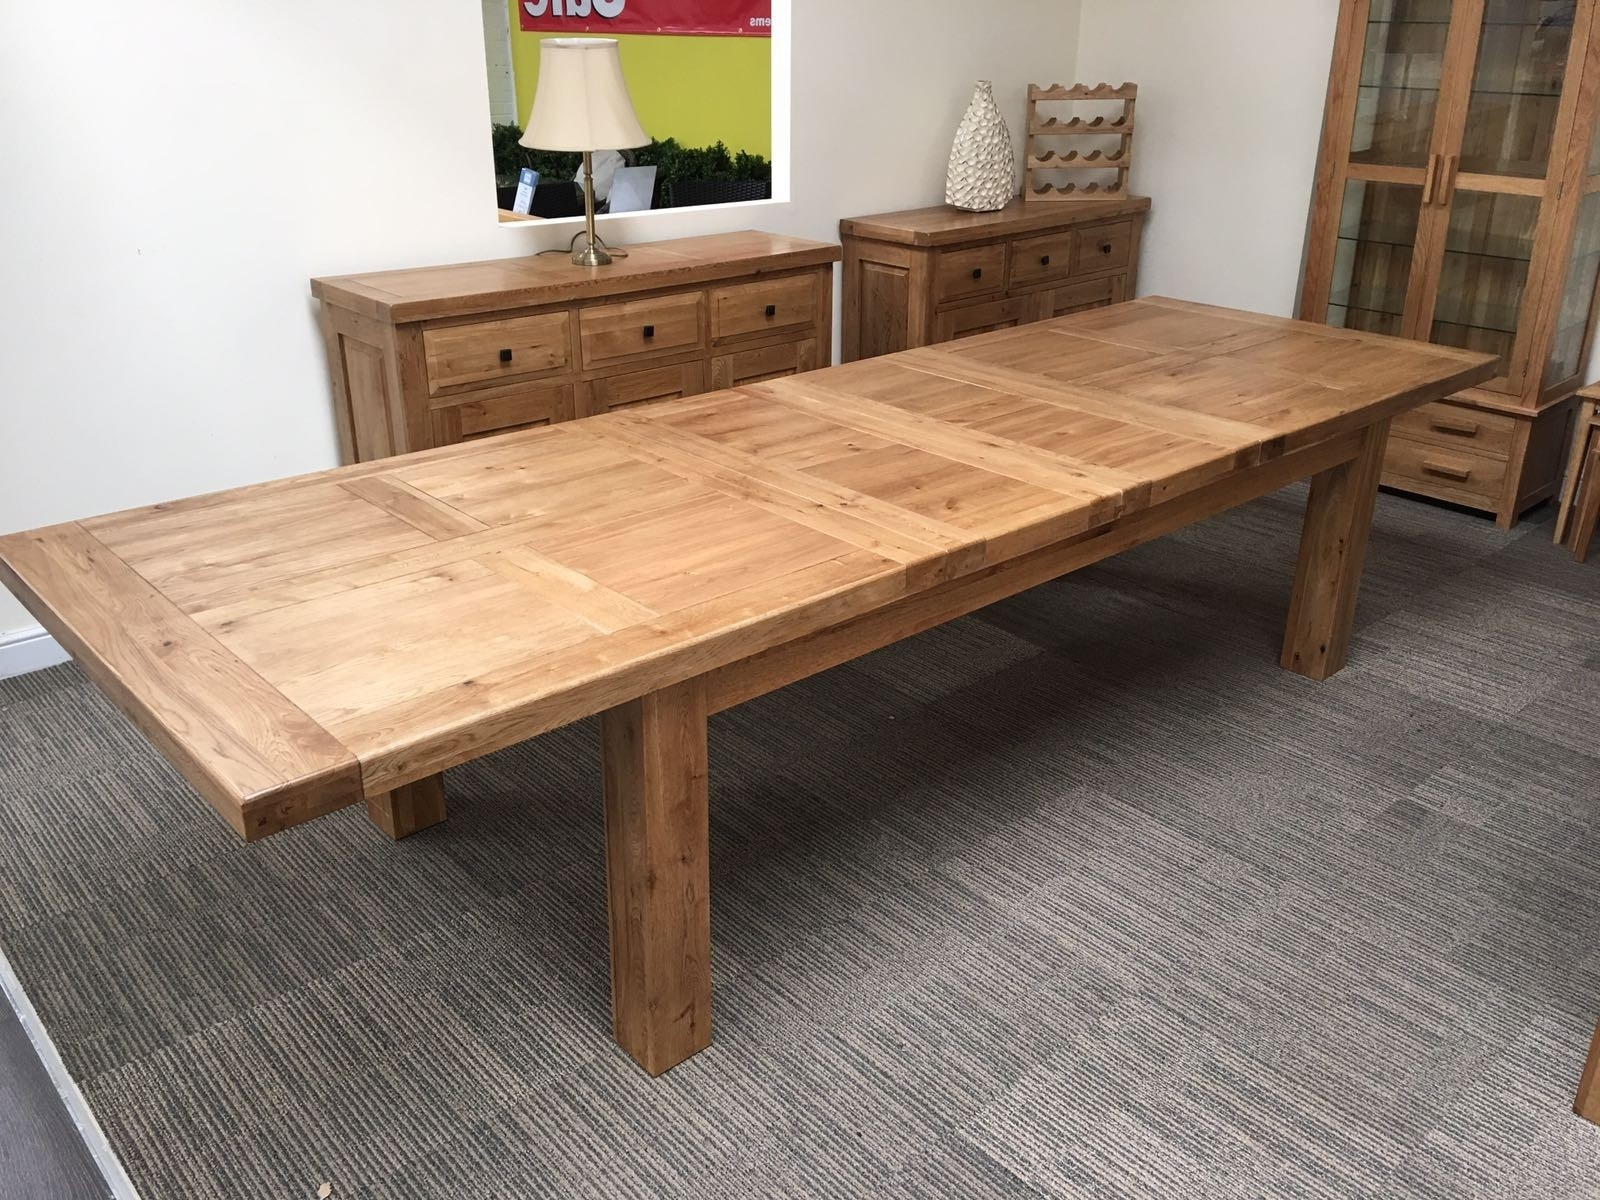 The Making Of The Solid Wood Dining Table – Home Decor Ideas Within Widely Used Solid Oak Dining Tables (View 2 of 25)